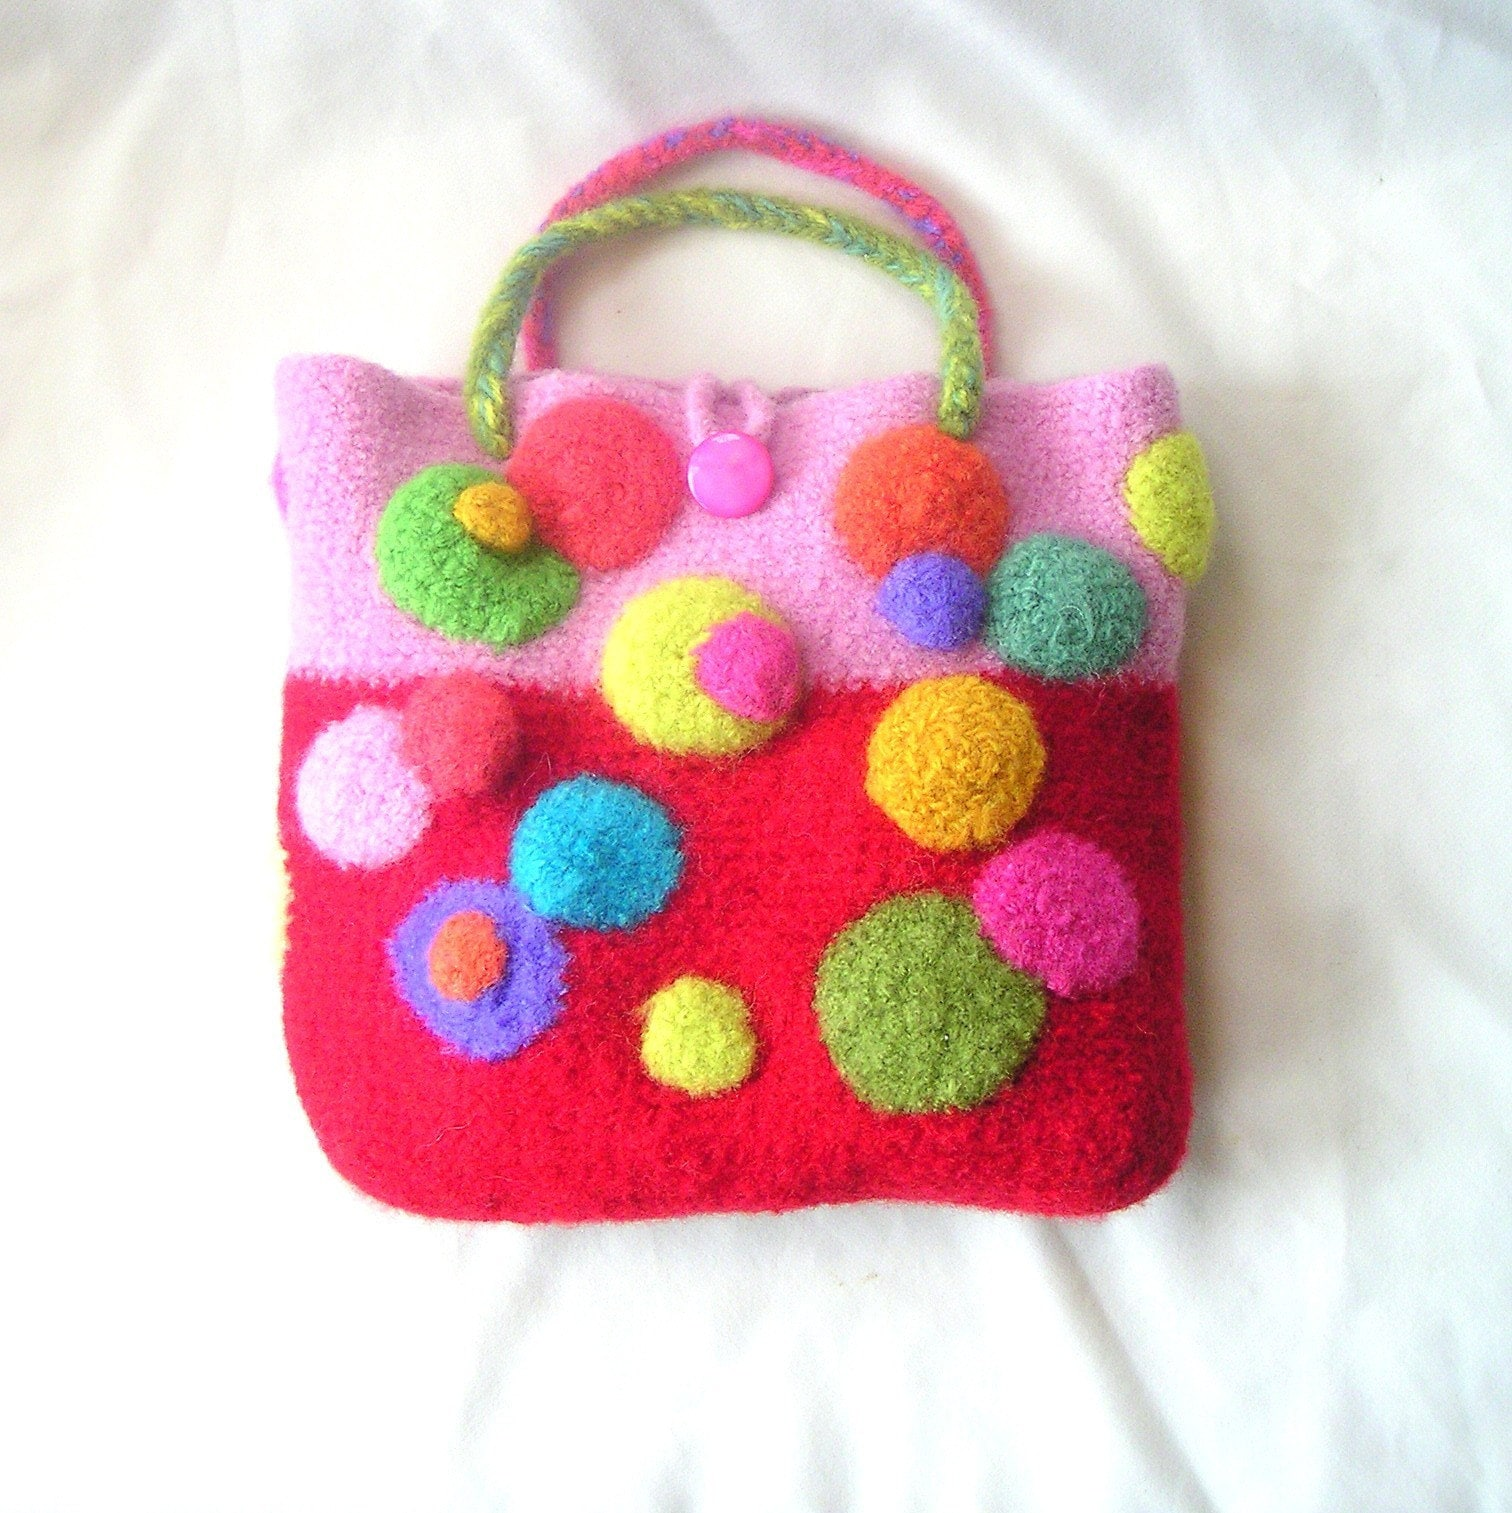 Easy Felted Crochet Bag Pattern : Cutest Circle Bag EASY Crochet Felted by GraceKnittingPattern